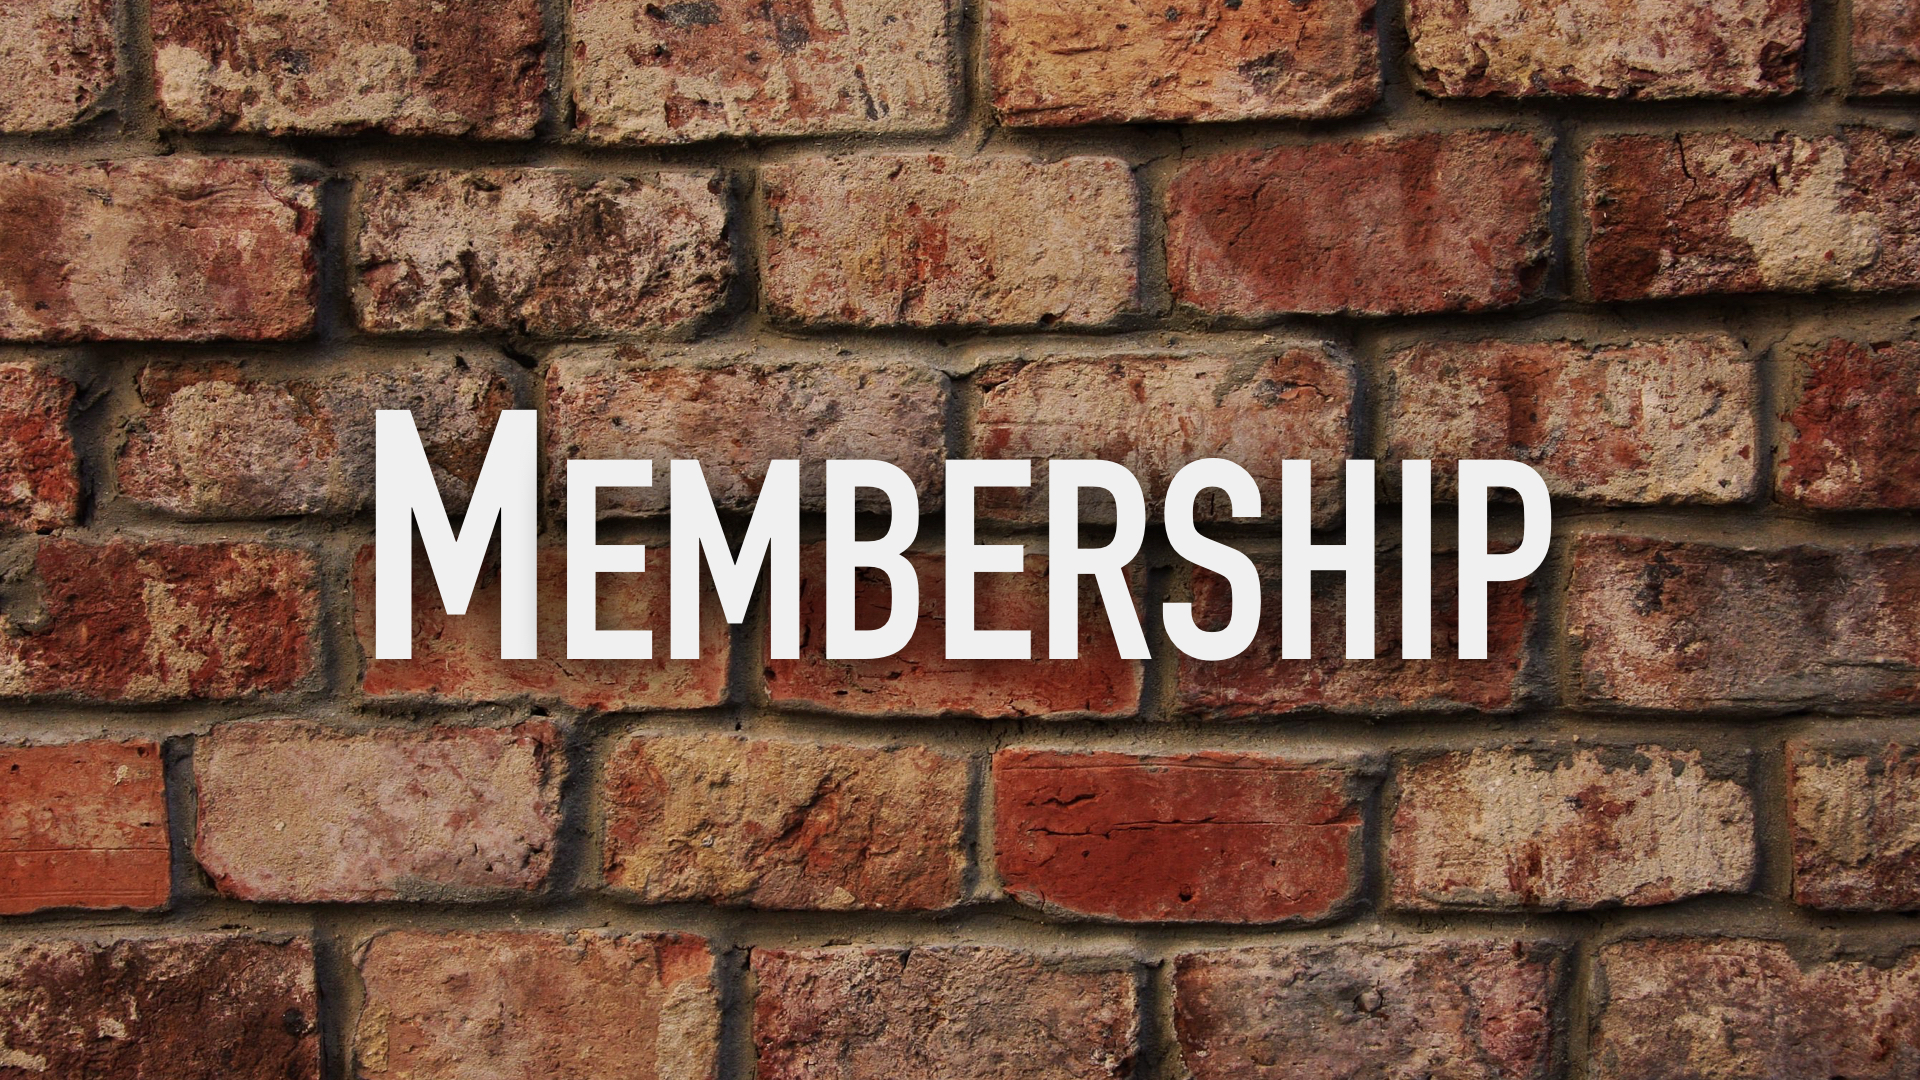 membership-bricks-graphic-001